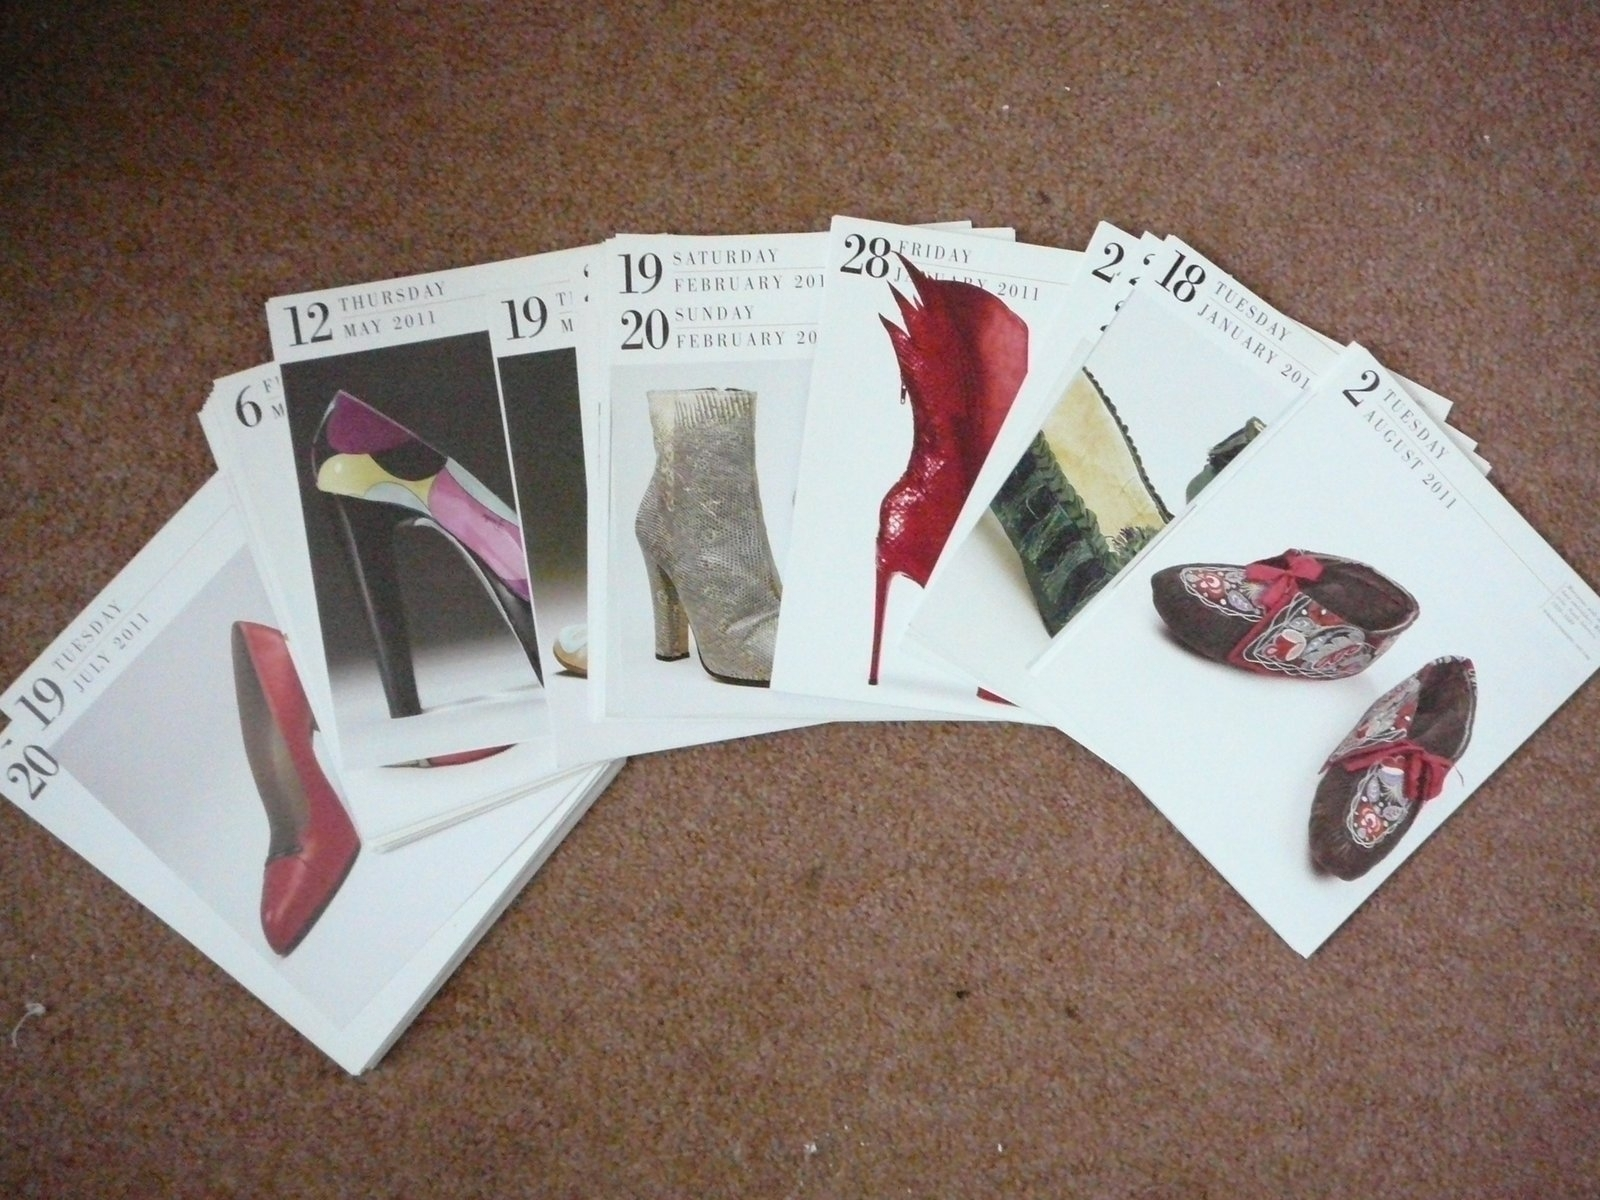 Free: Old Calendar With Pictures Of Shoes (Sg17 (Shefford))